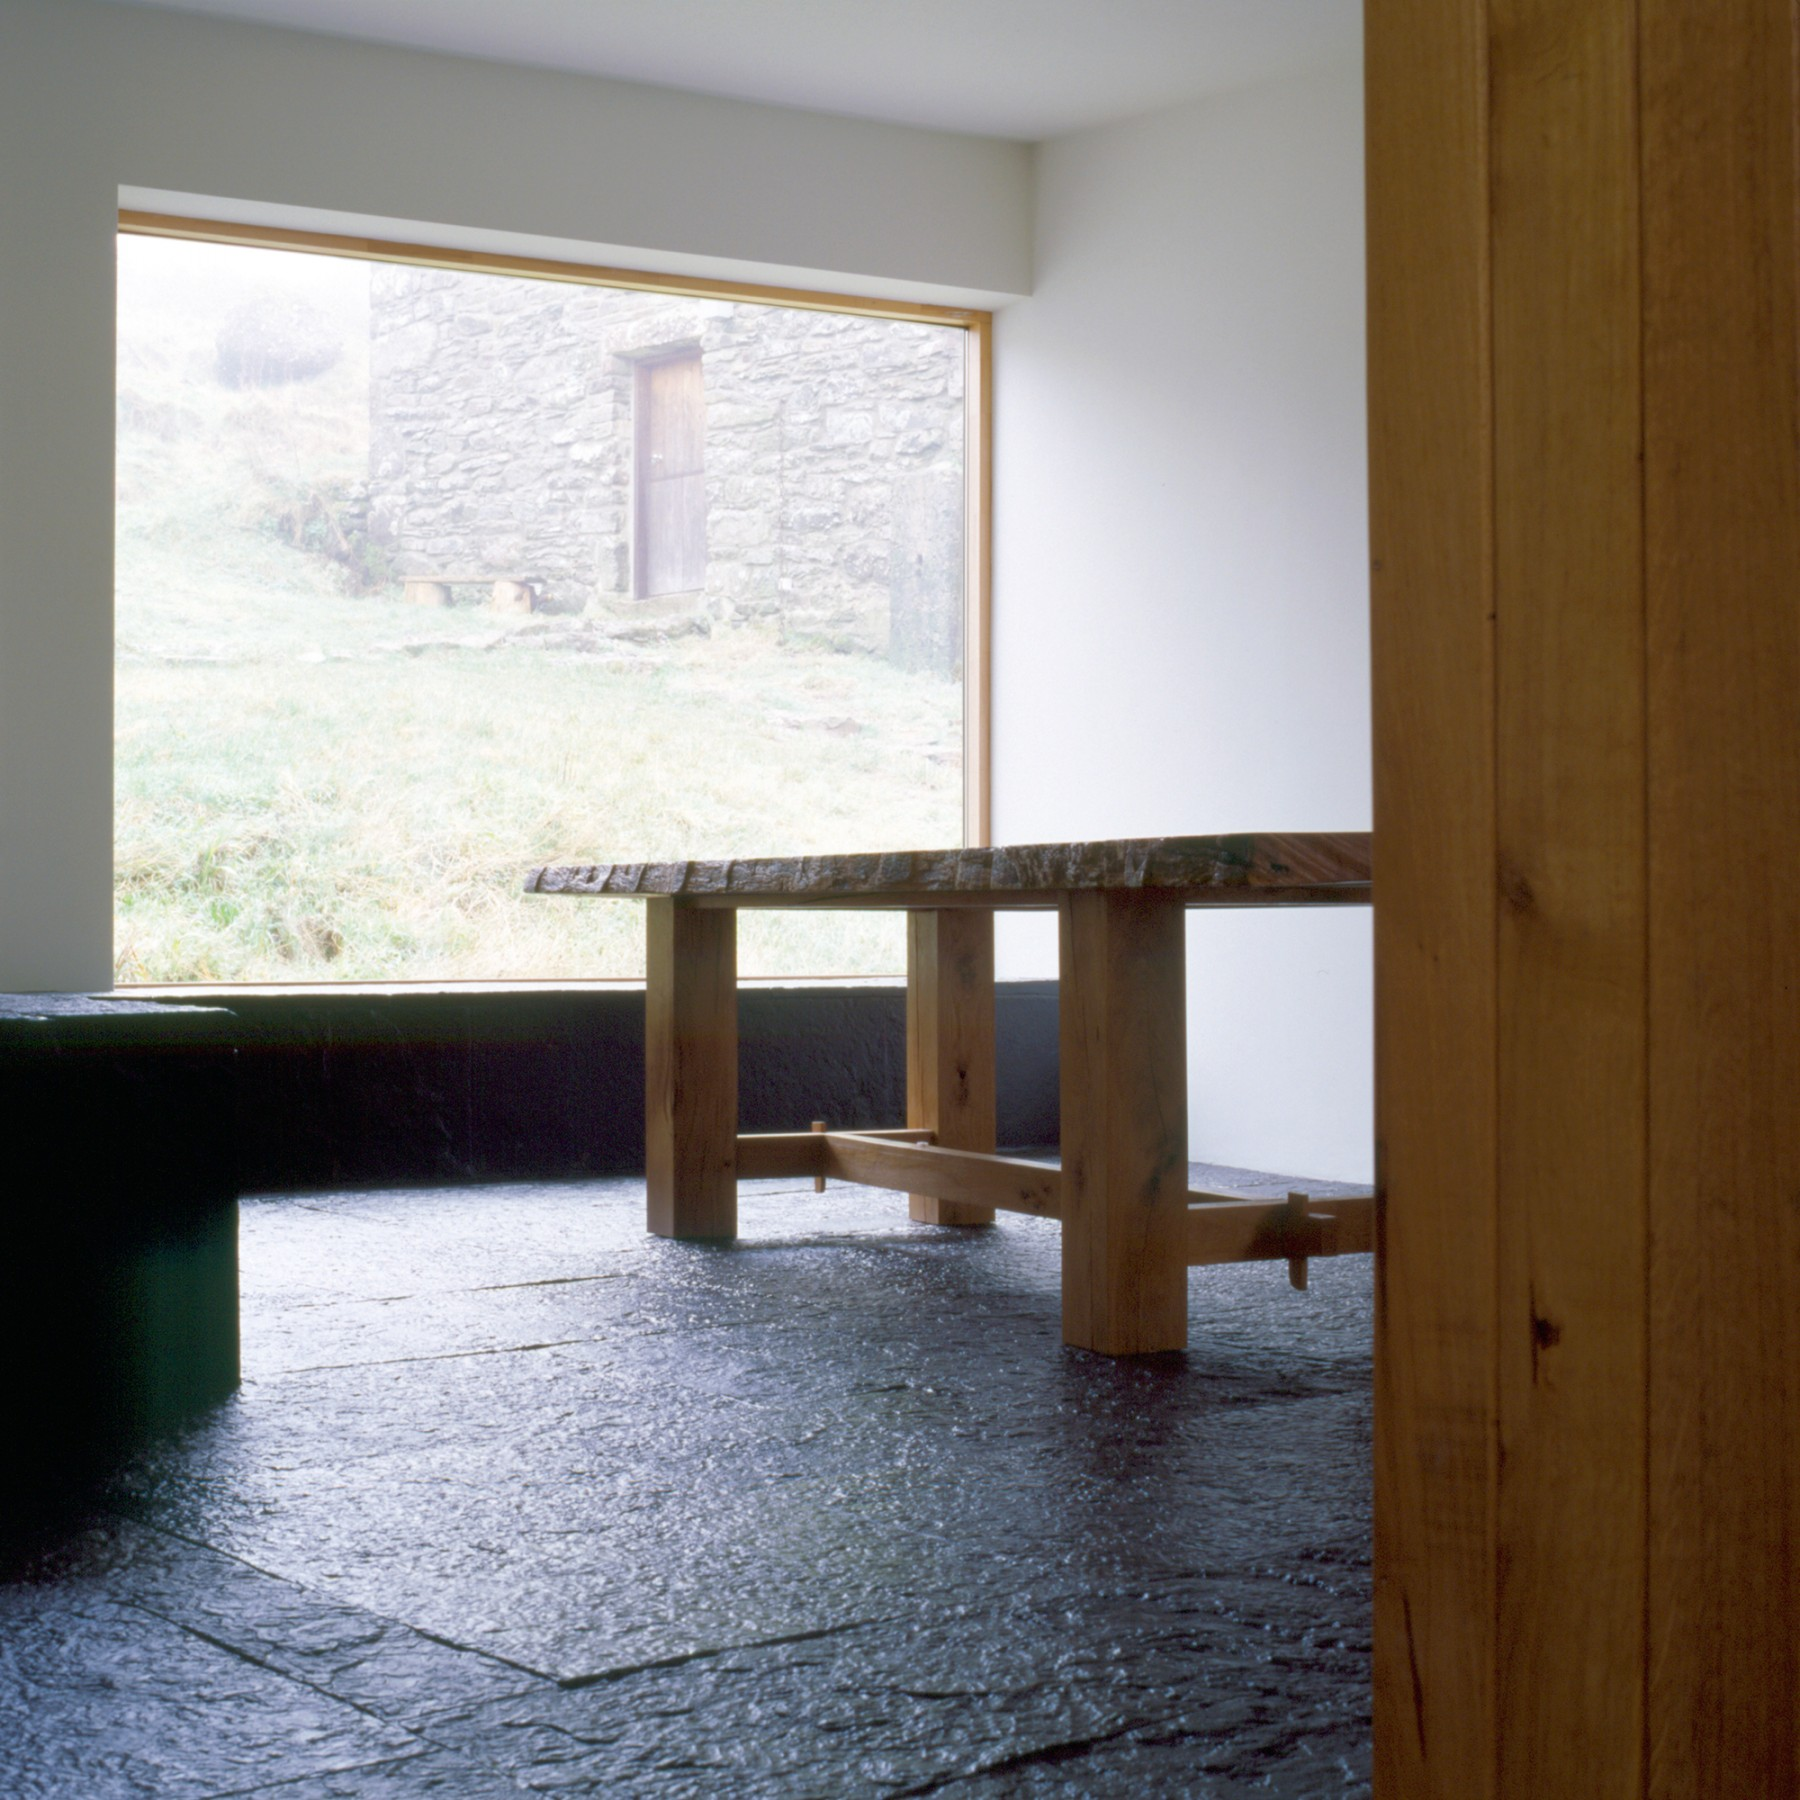 FaHa-Farm-house-barn-County-Clare-Ireland-residential-home-rural-timber-zinc-Jamie-Fobert-Architects-11